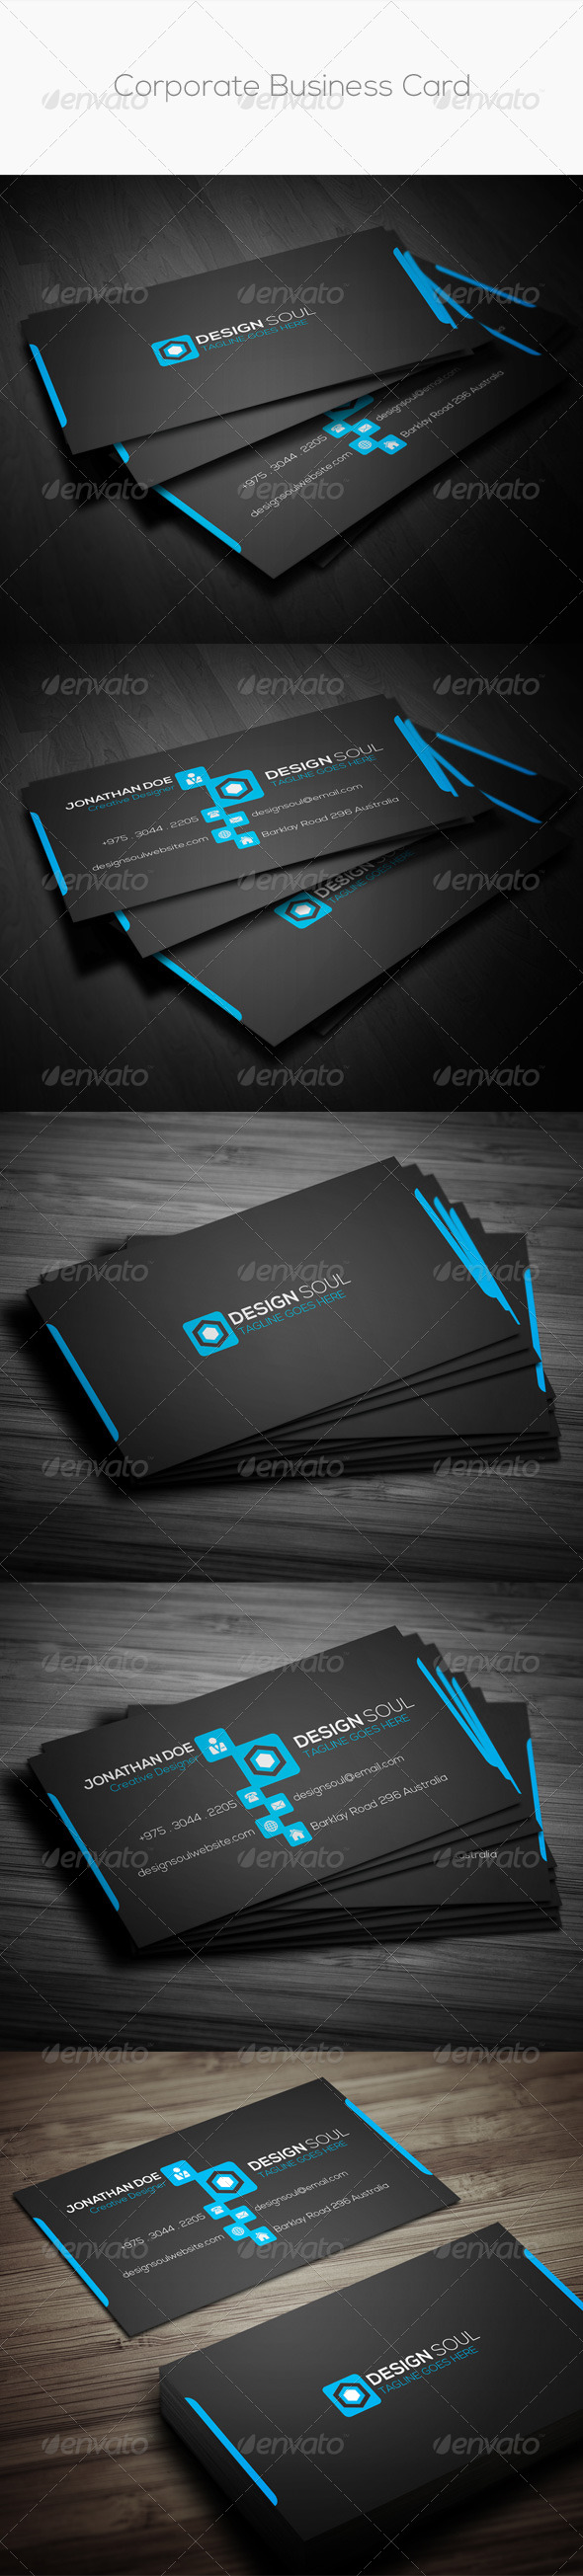 GraphicRiver Corporate Business Card 8745391